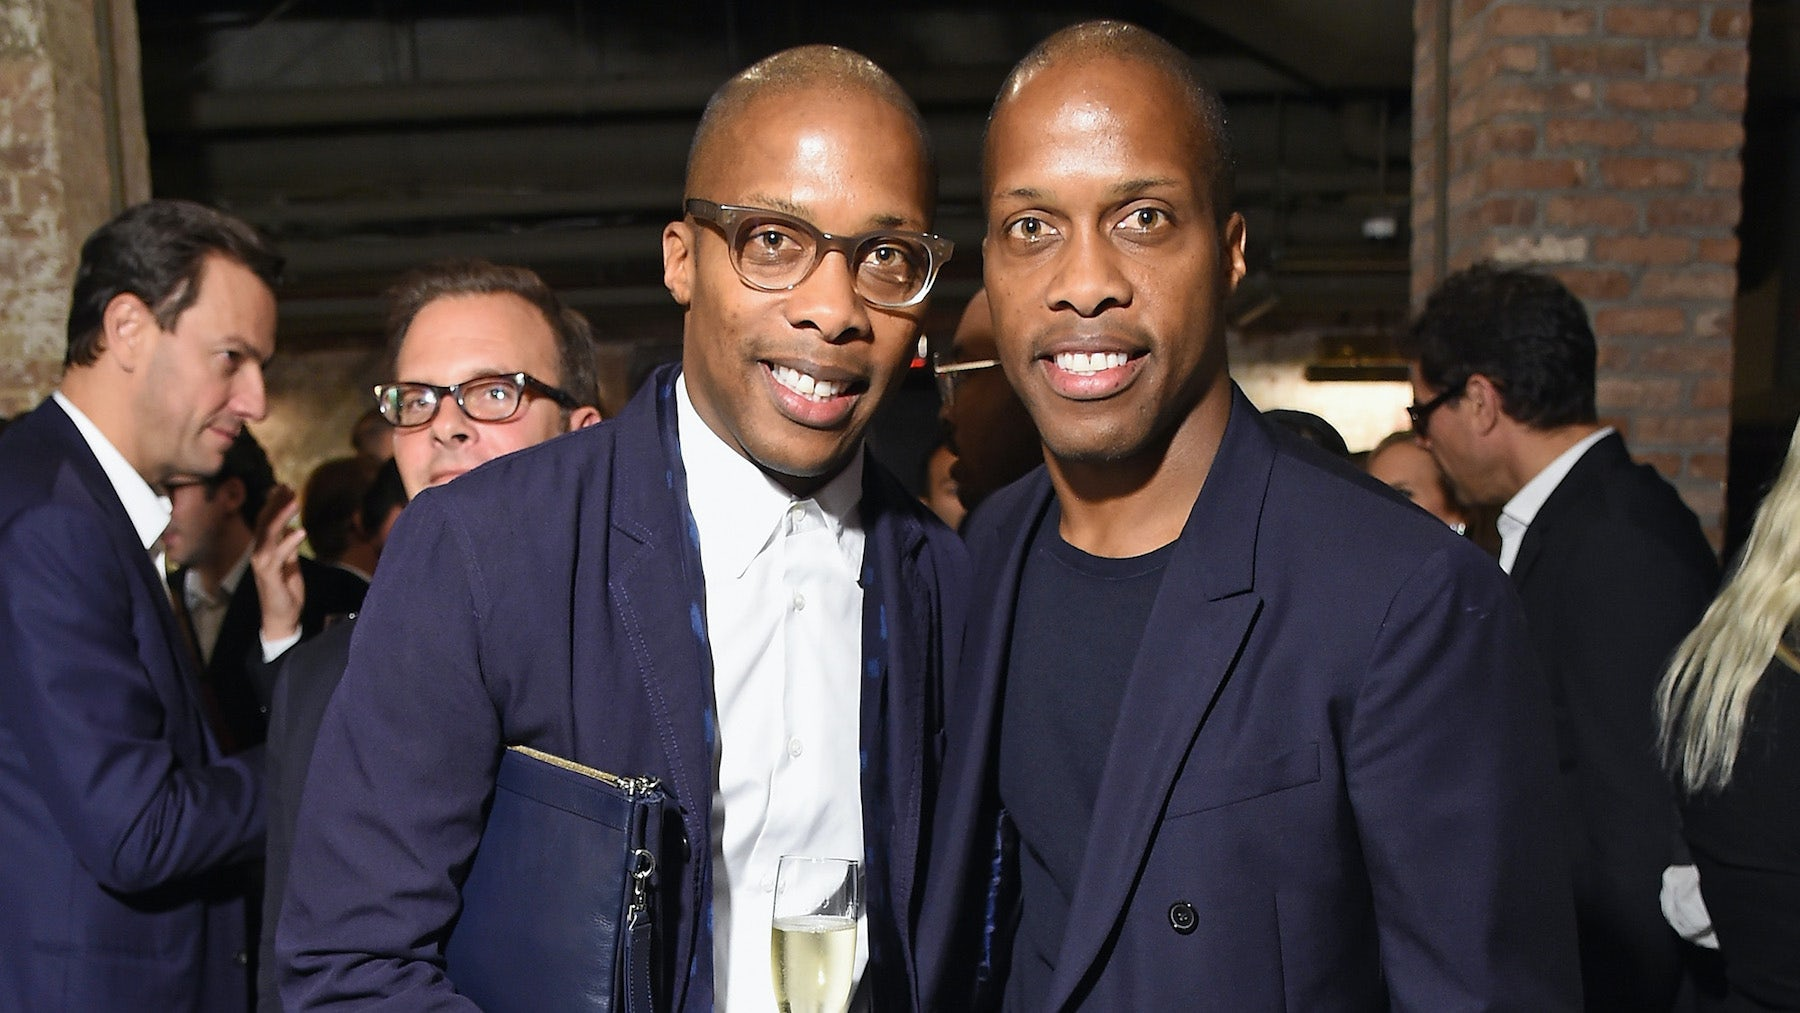 Dexter and Byron Peart   Source: Getty Images for The Business of Fashion